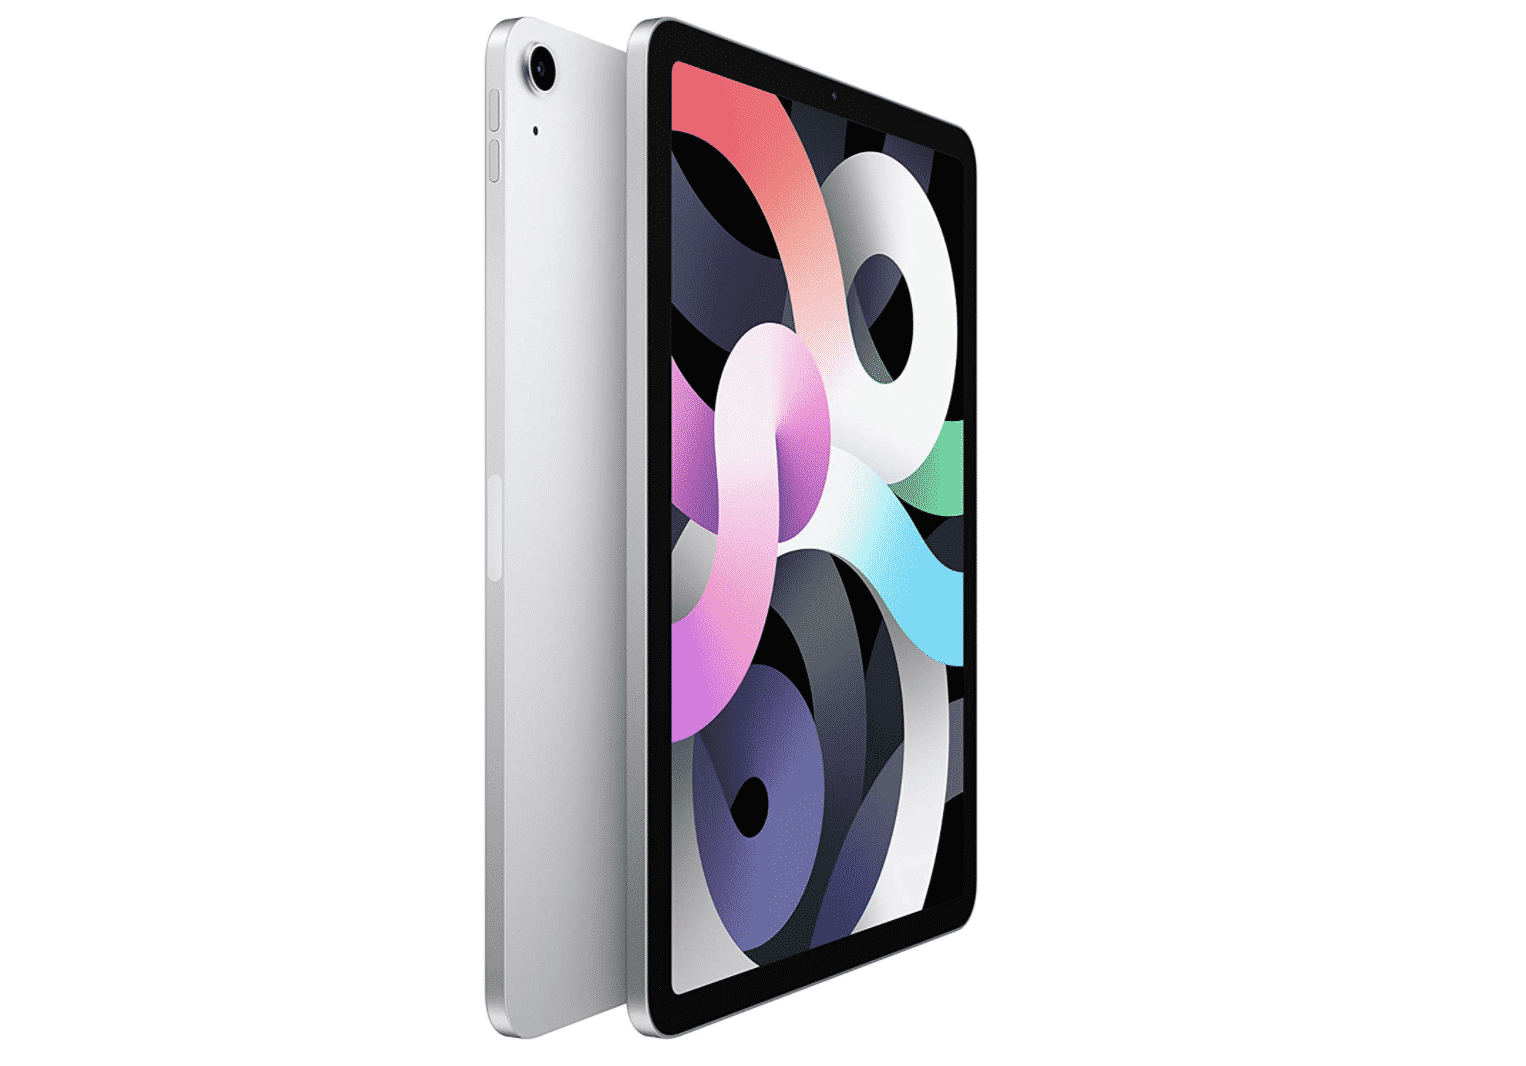 The latest iPad Air is now $99 off